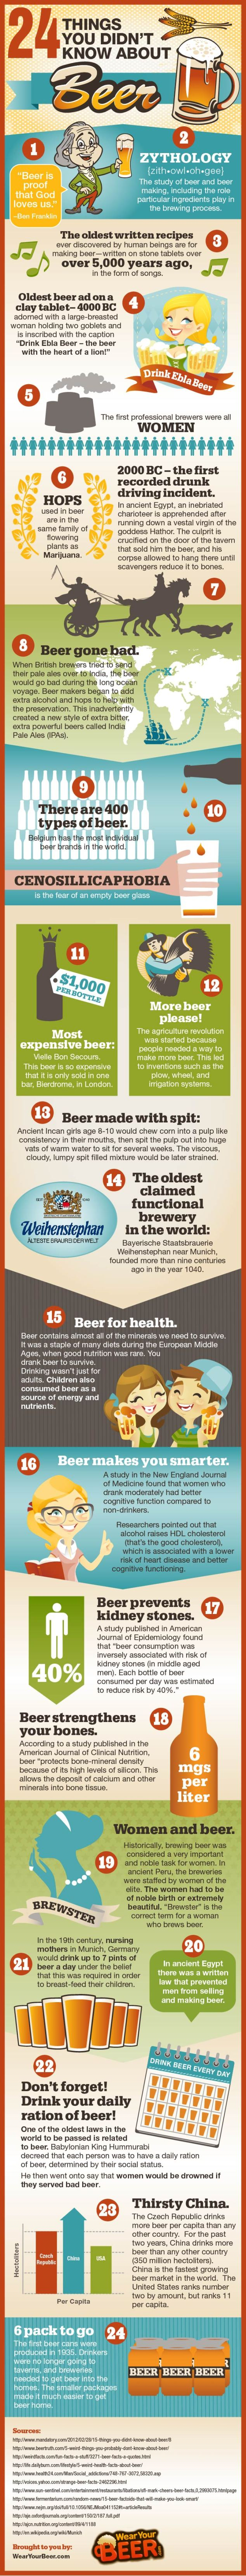 24ThingsaboutBeer